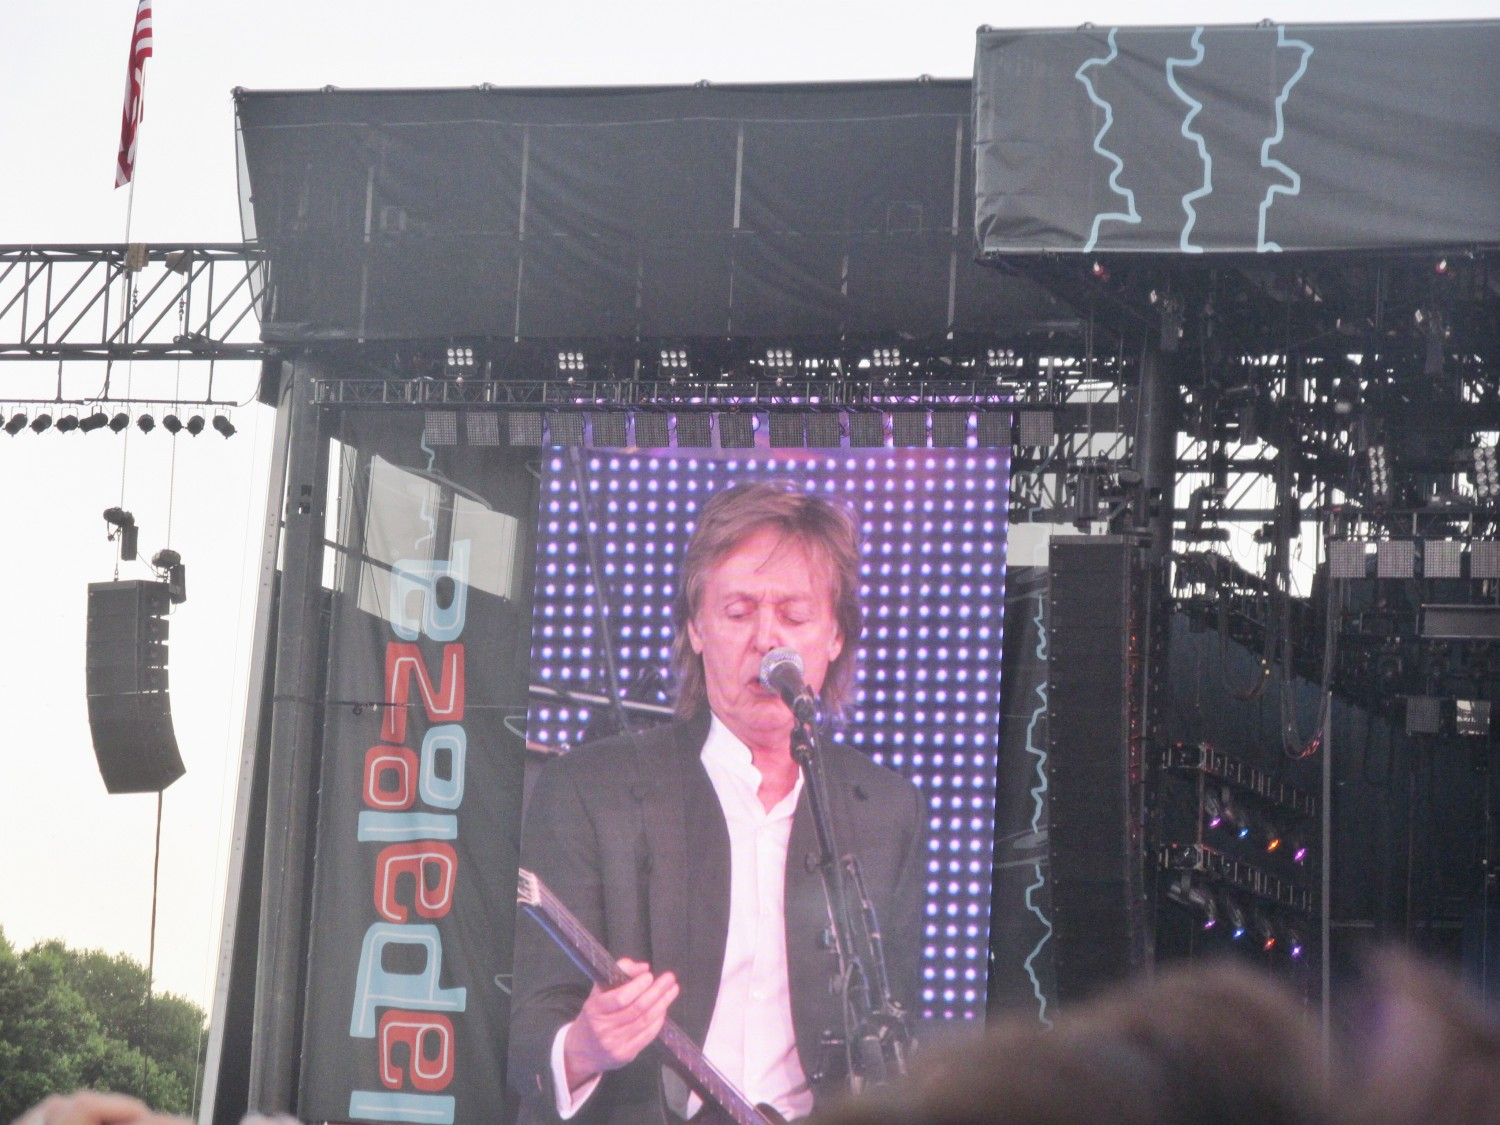 Paul McCartney Lollapalooza perfomance